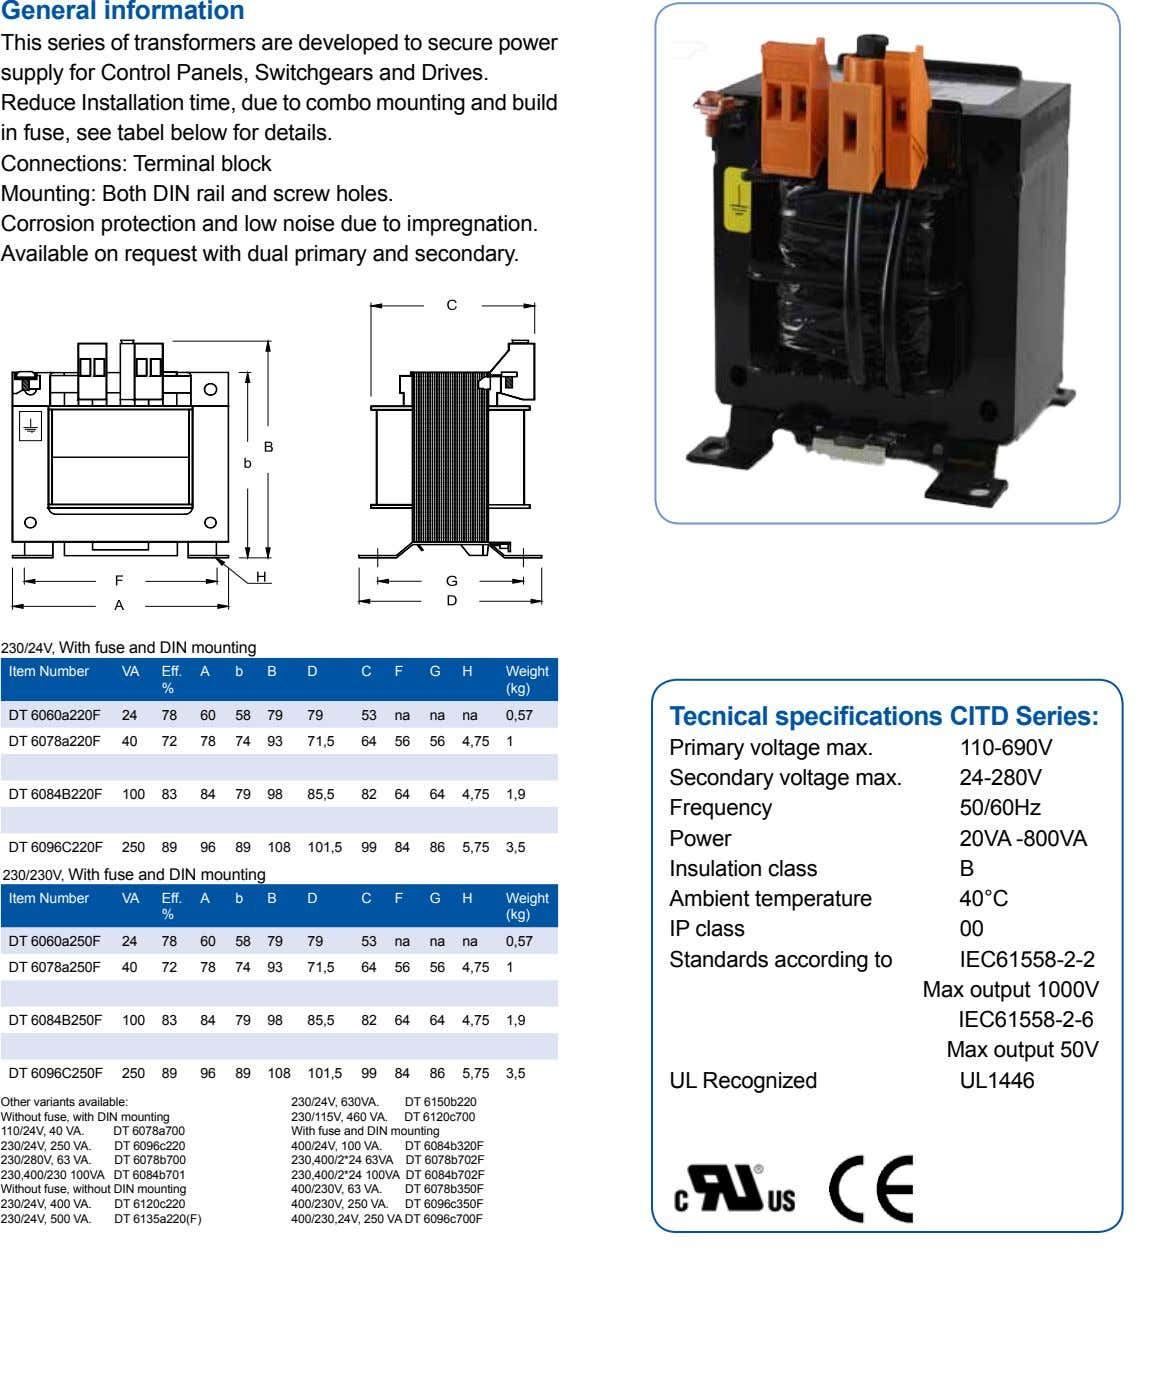 General information This series of transformers are developed to secure power supply for Control Panels, Switchgears